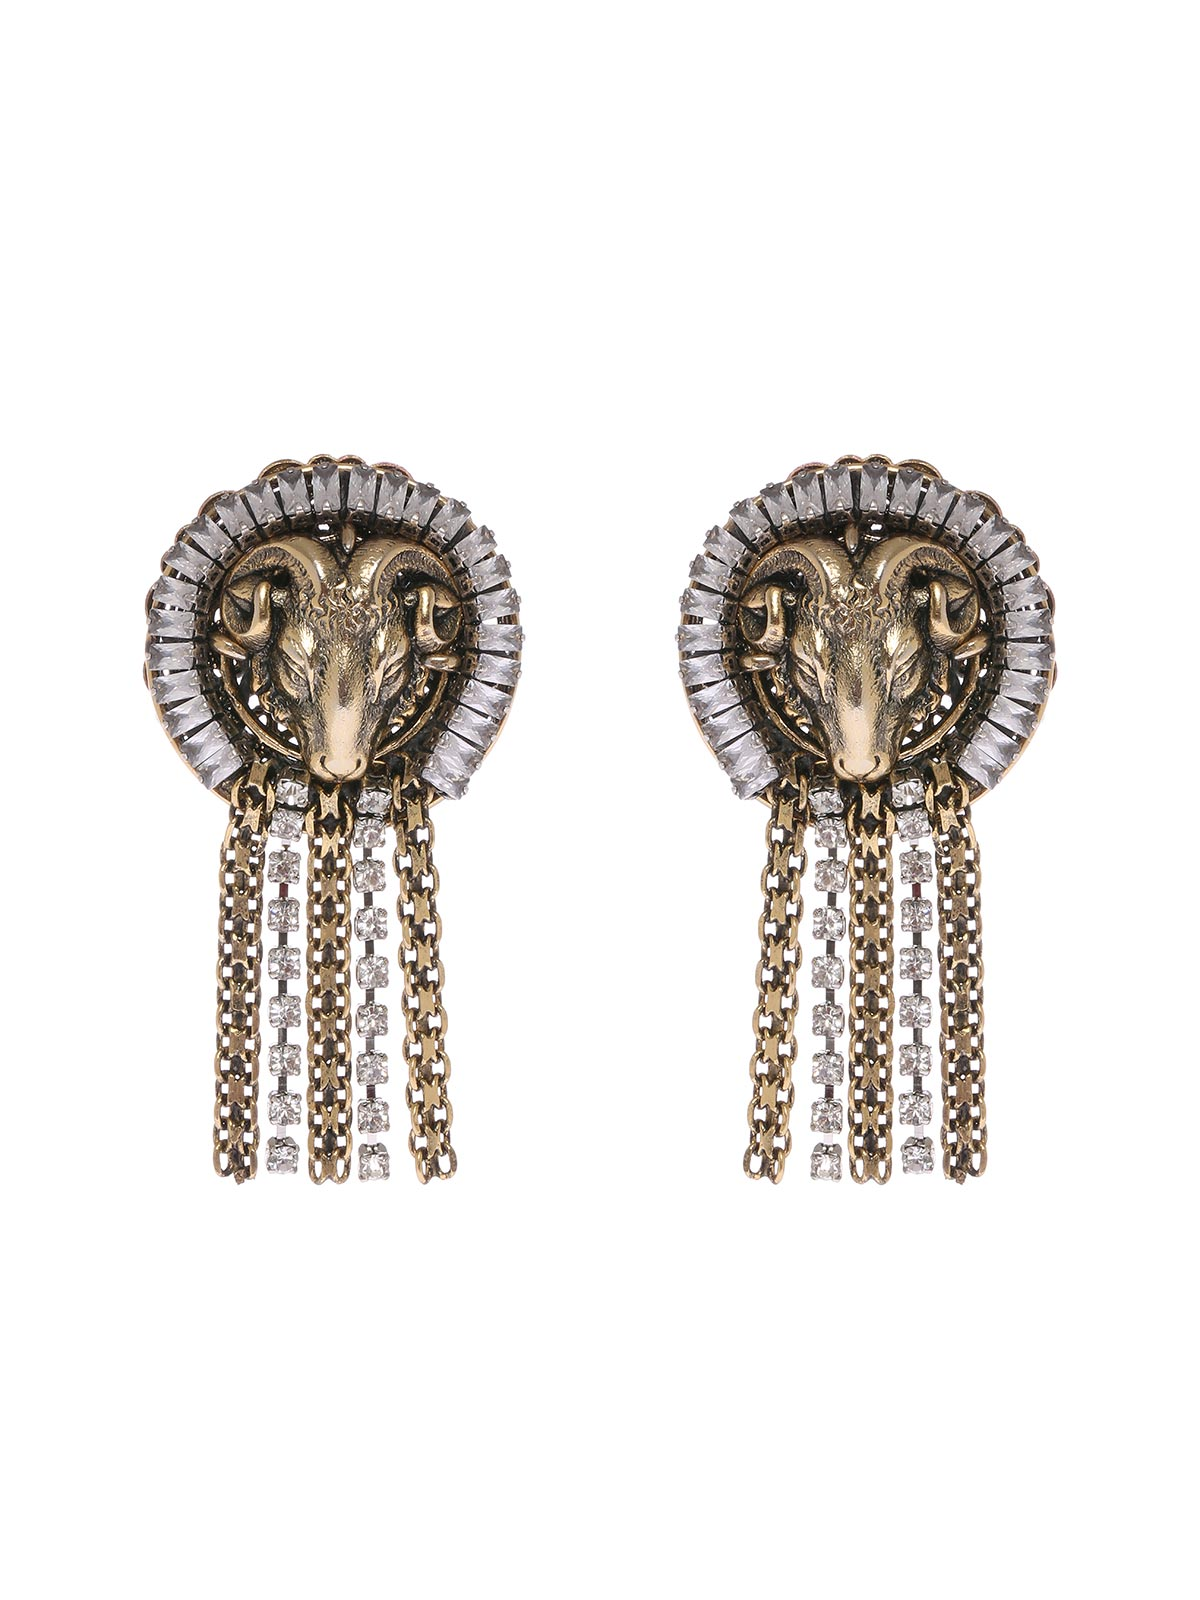 Aries earrings with crystals and cascade chain